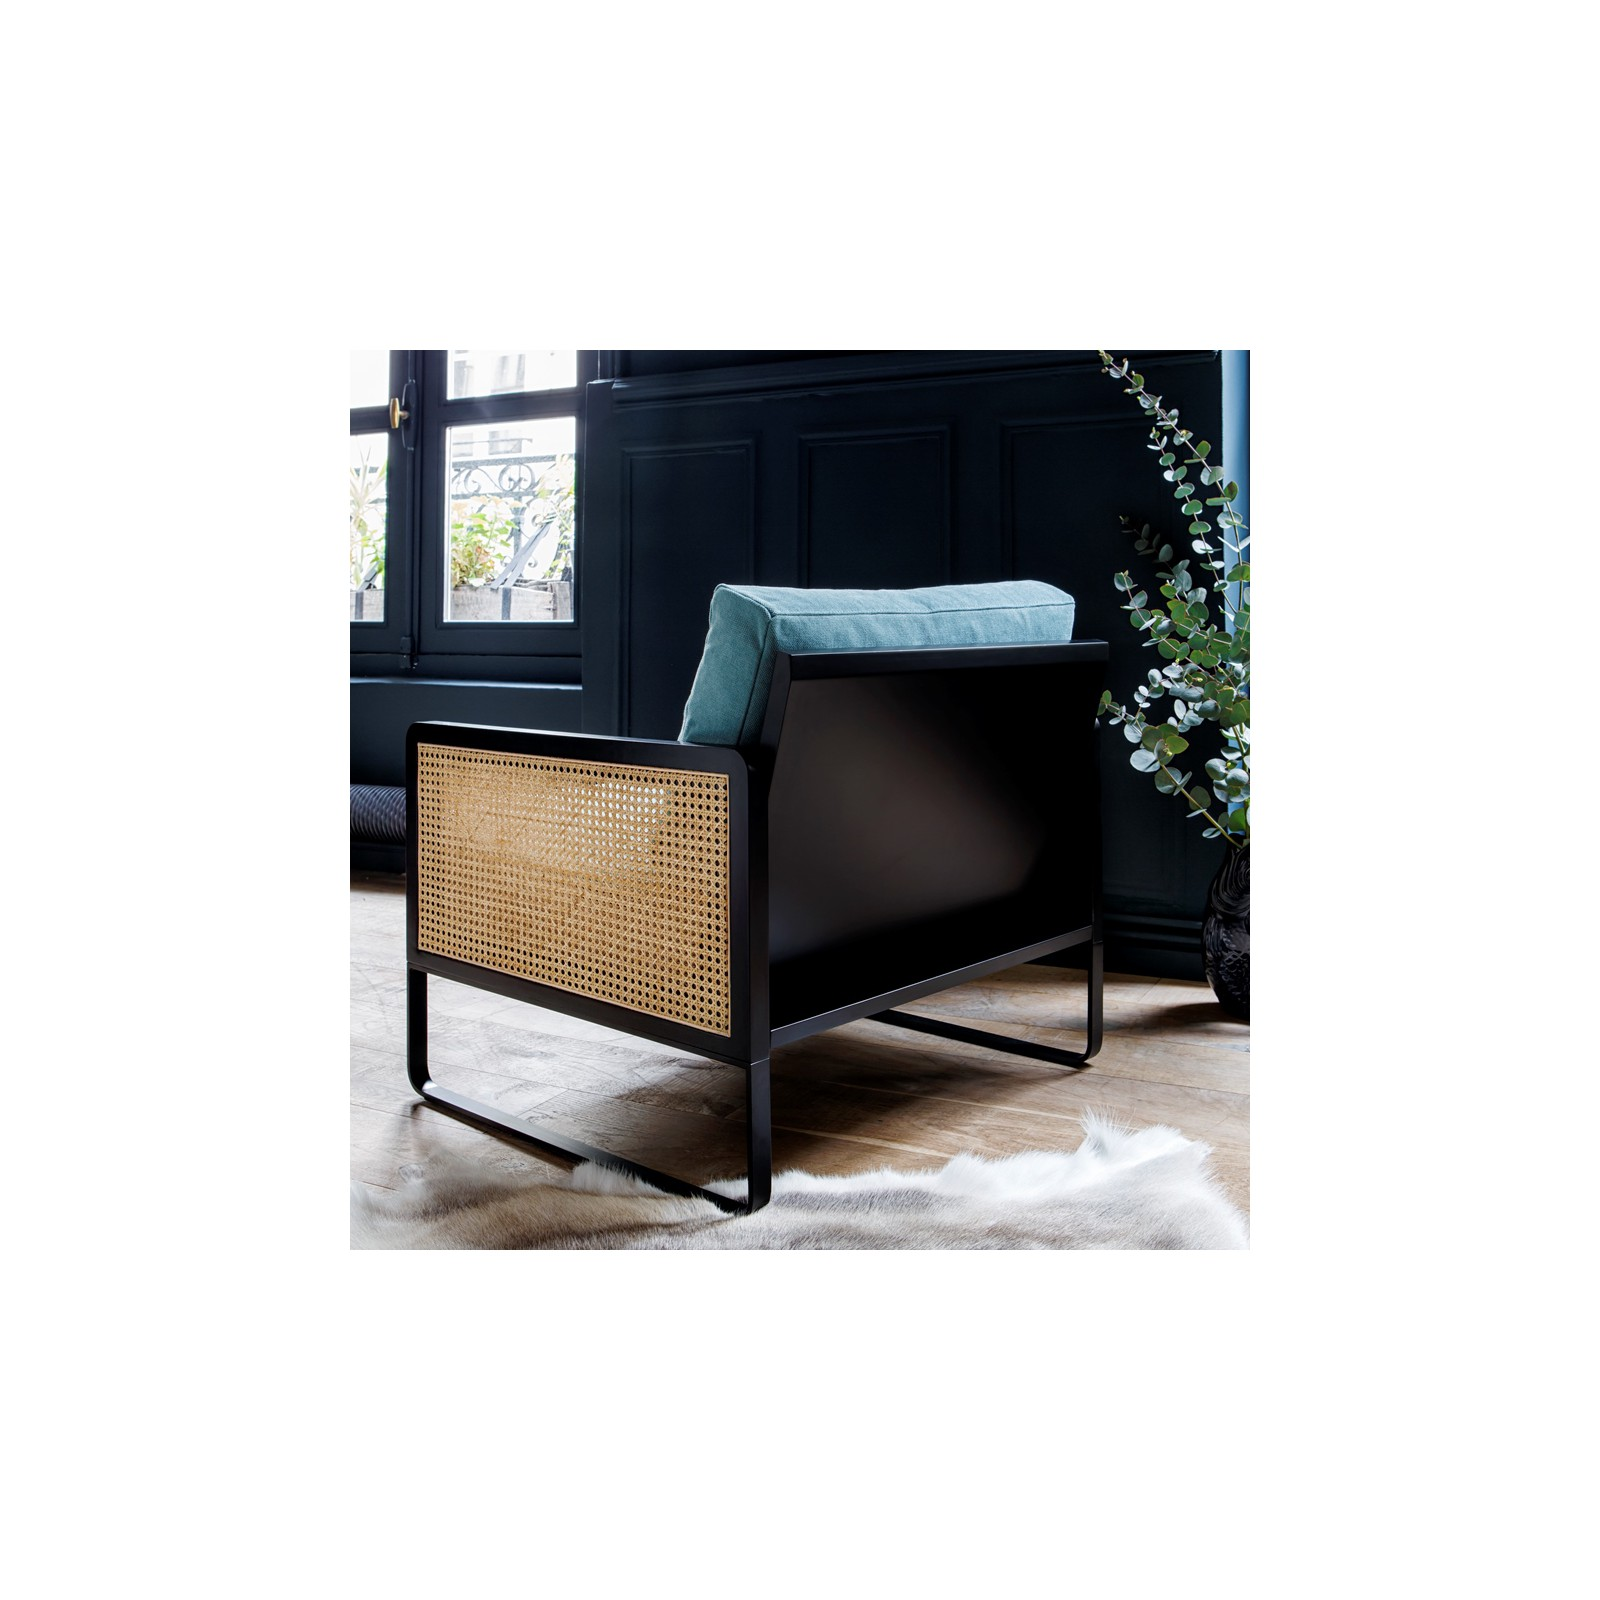 fauteuil cannage velours bleu marine arne concept. Black Bedroom Furniture Sets. Home Design Ideas